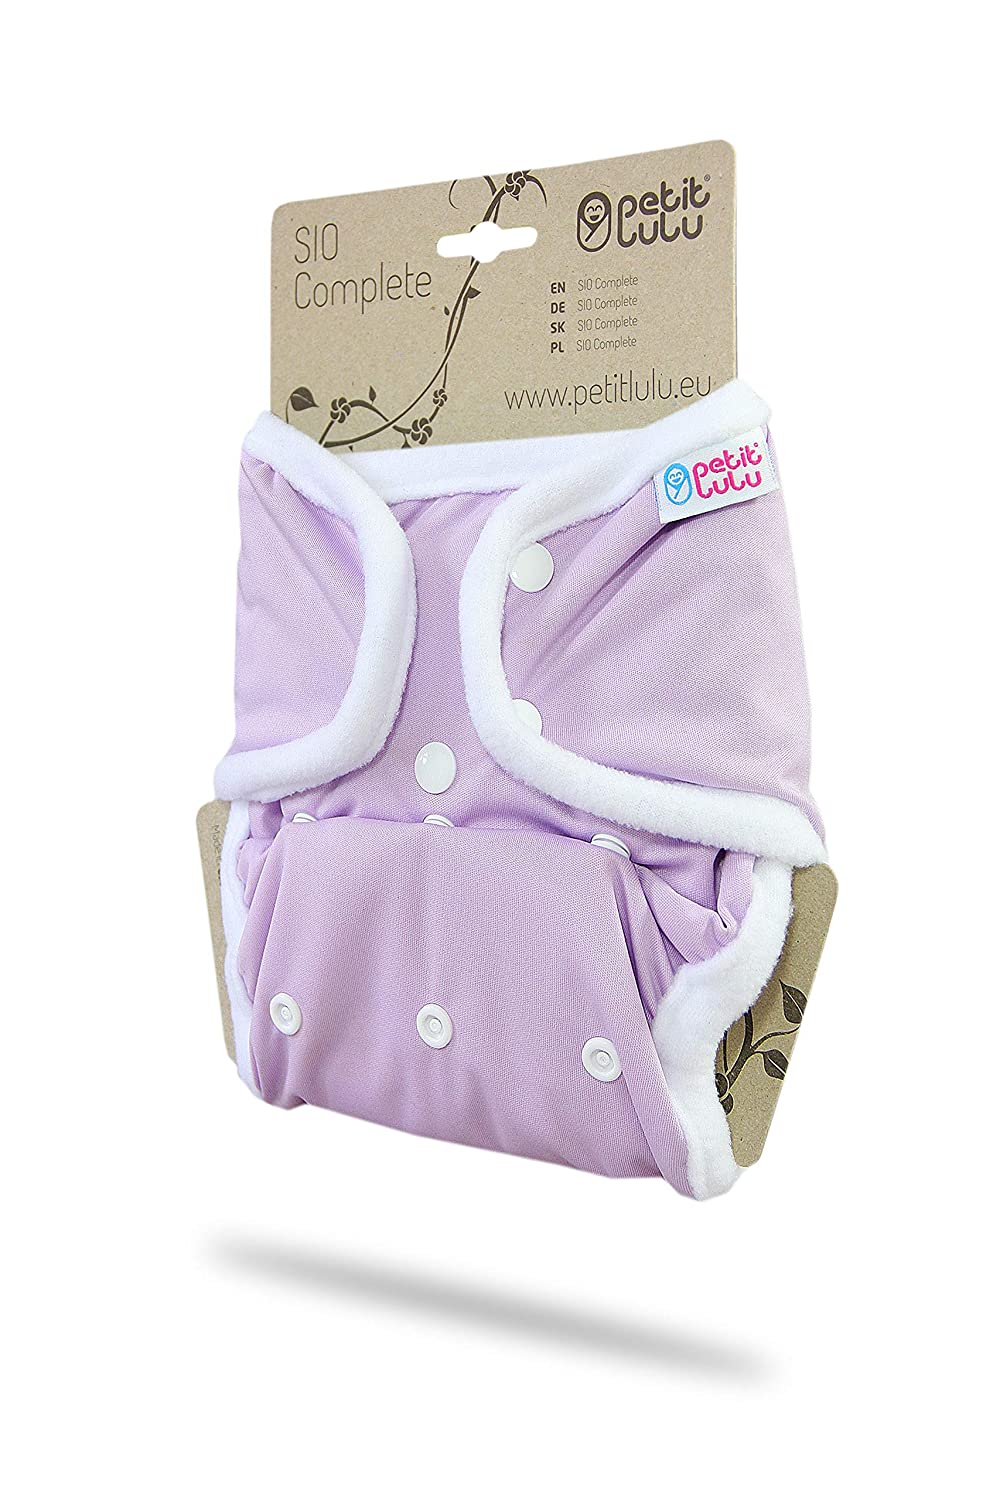 Lilac Reusable /& Washable | SIO Complete All in Two Cloth Nappies Made in Europe 9-33 lbs Snaps Petit Lulu AI2 Cloth Nappy One Size